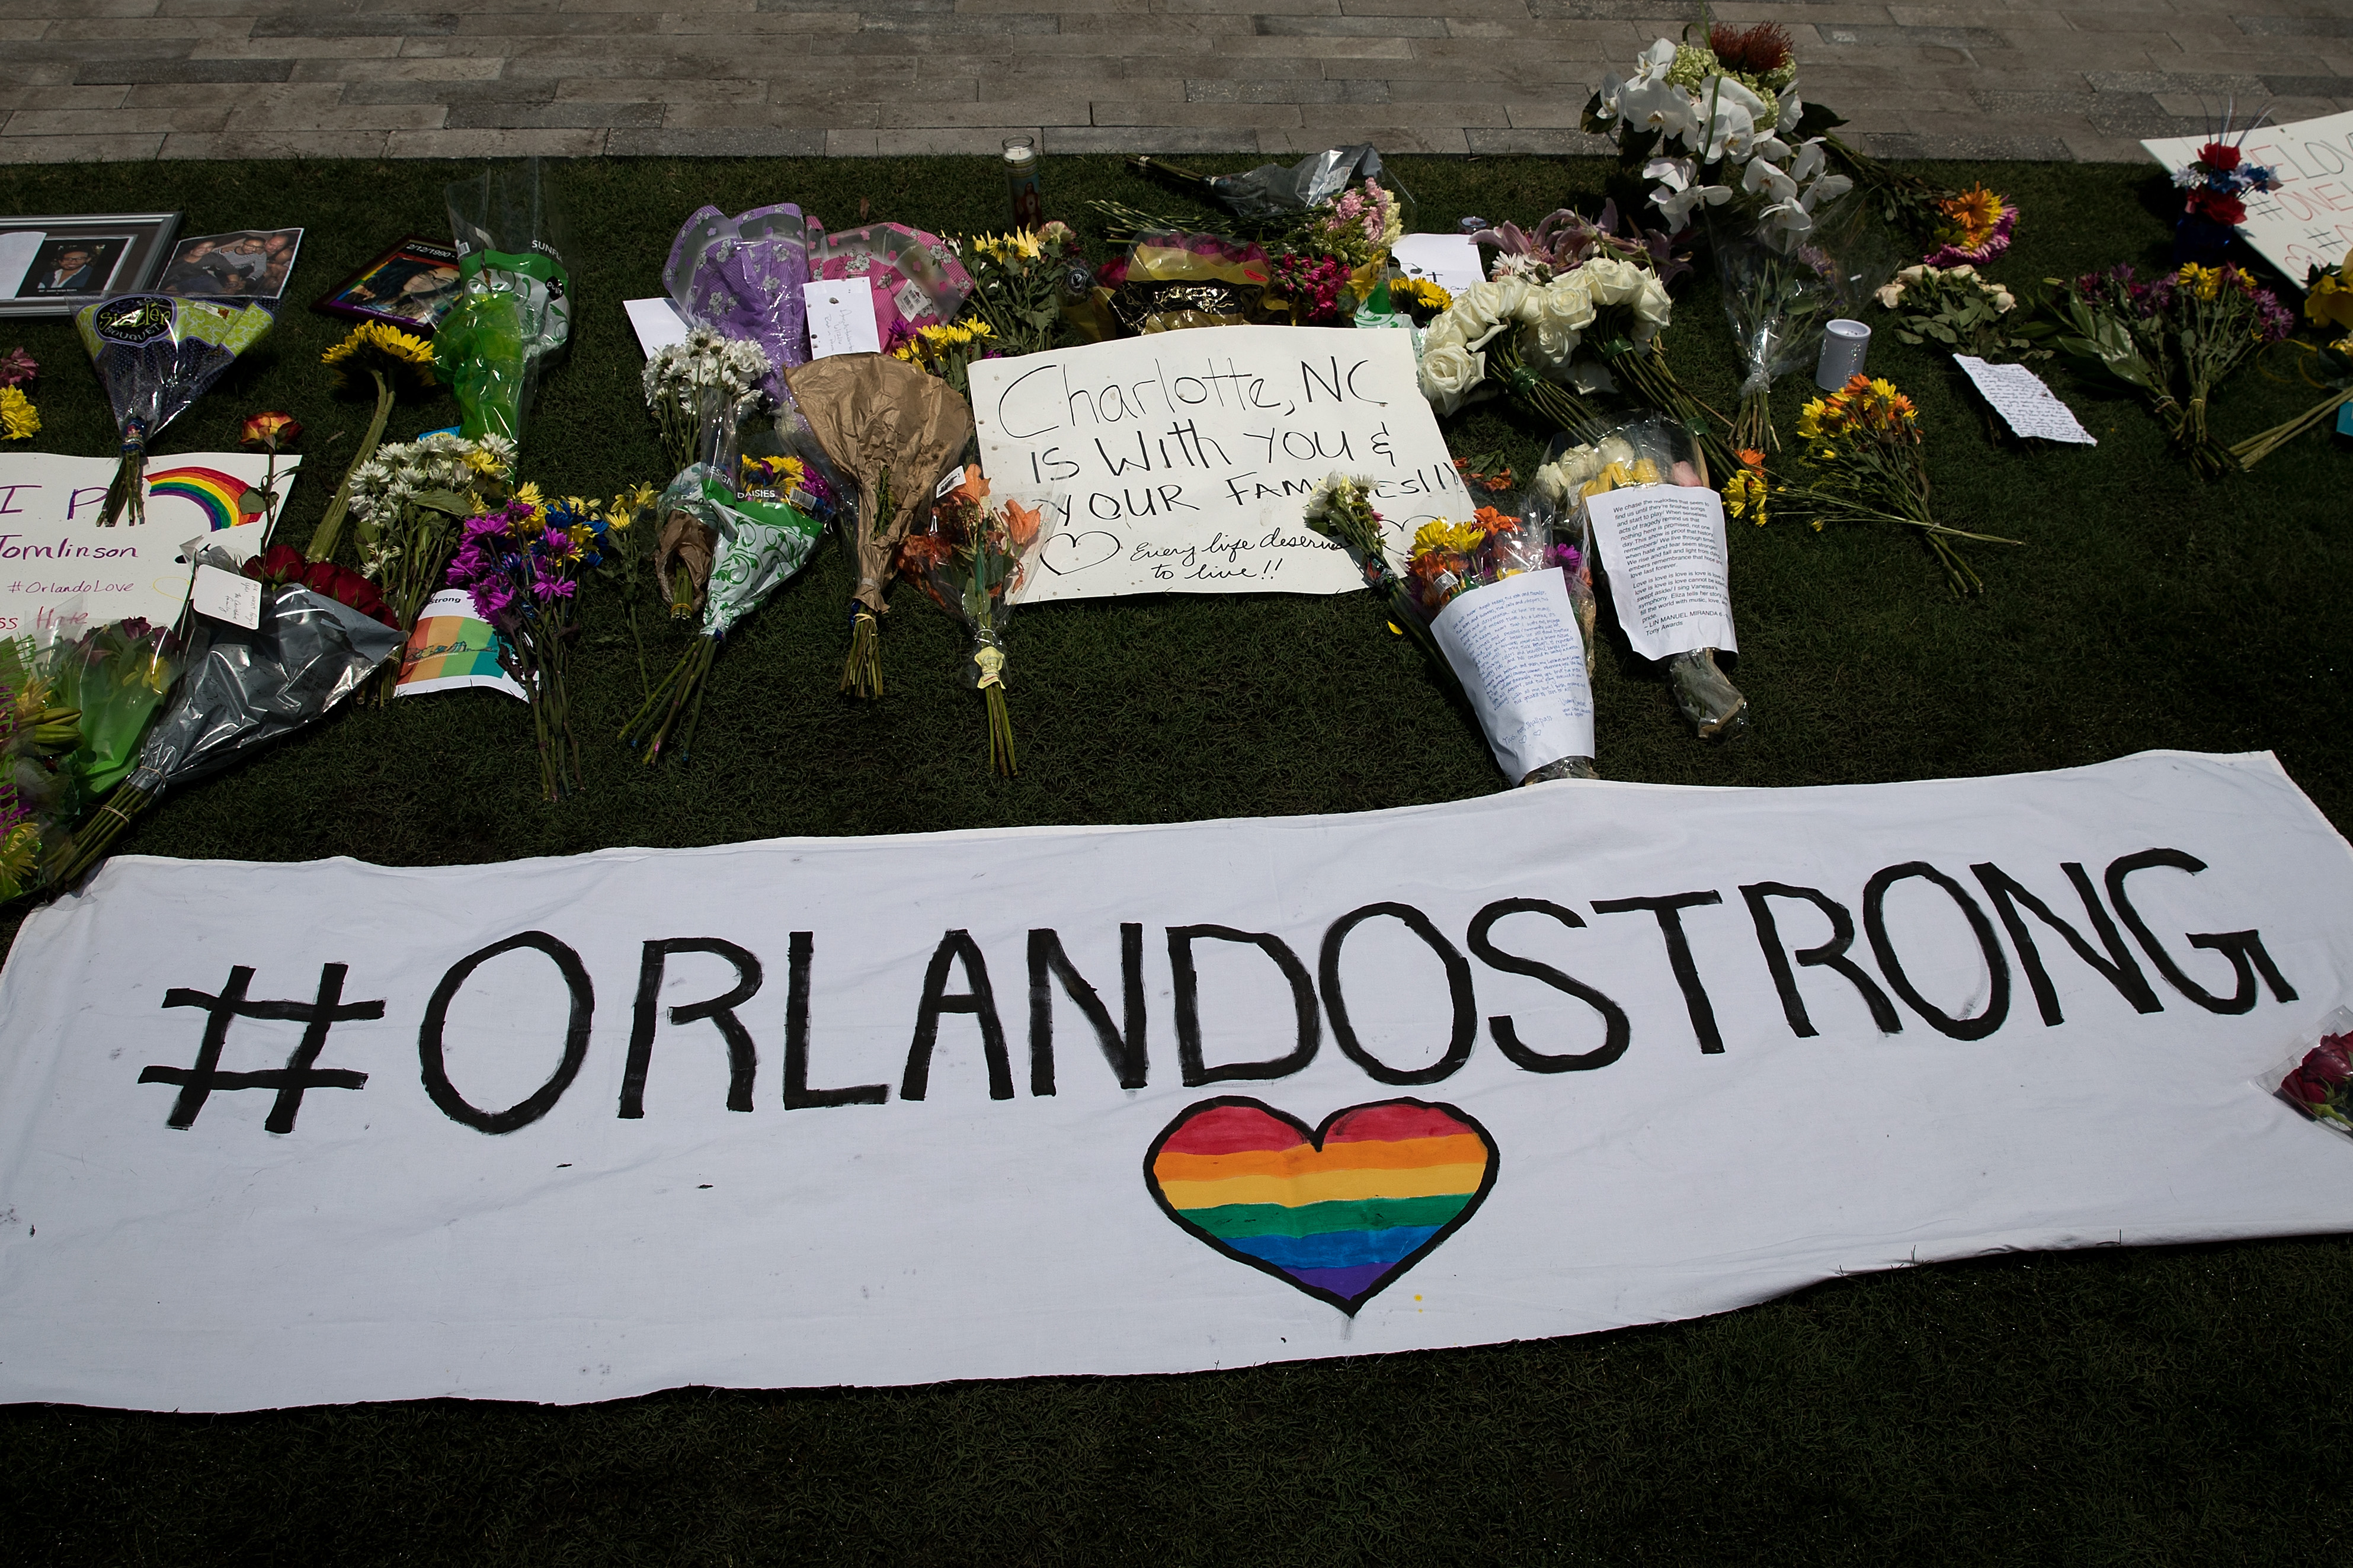 Florida Politicians Offer Condolences After Orlando, Still Won't Pass Laws to Protect LGBT